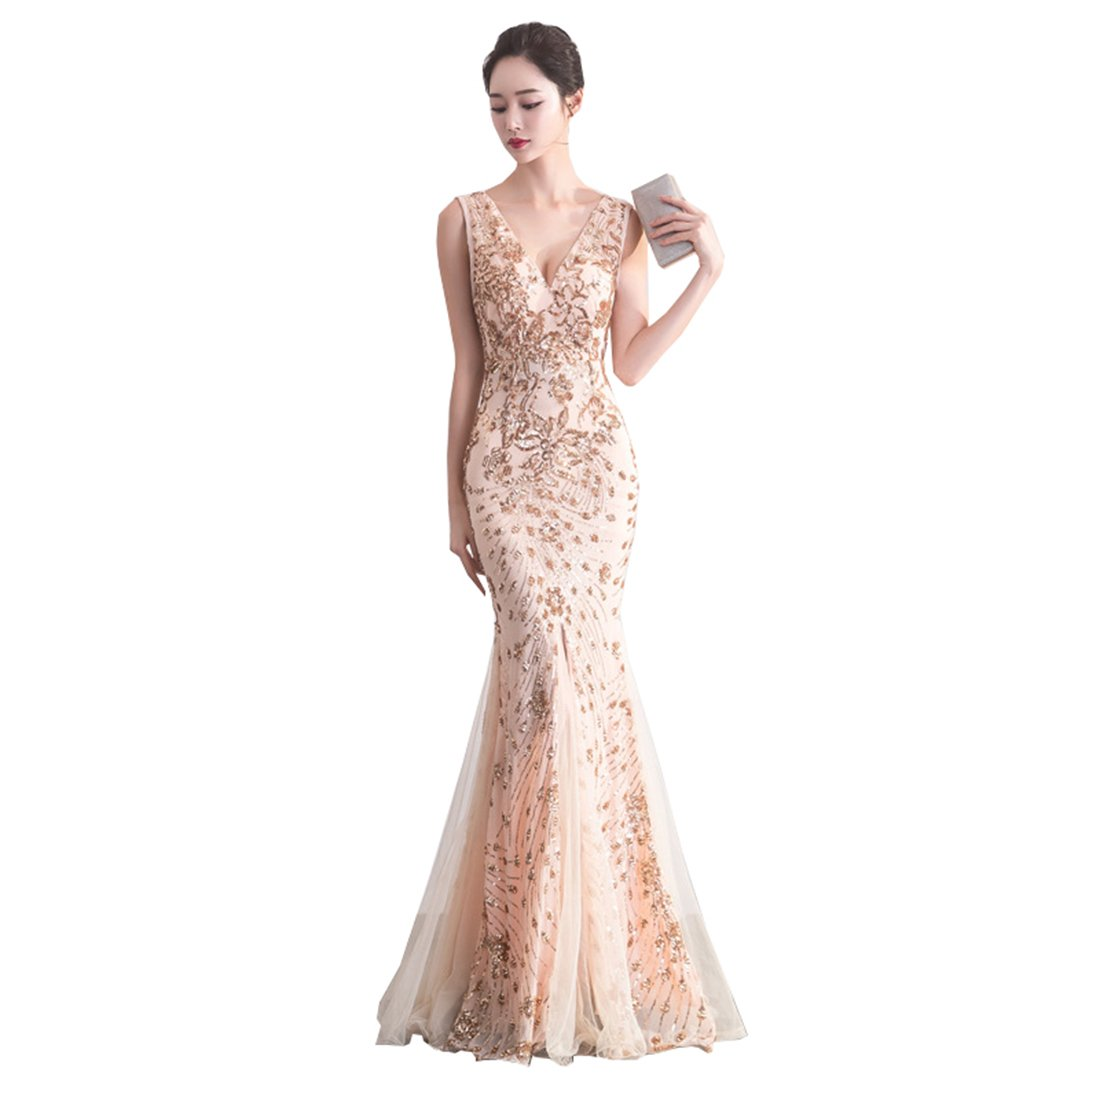 KUFEIUP Womens Vintage Sequins Mermaid Formal Evening Cocktail Long Dresses for Party